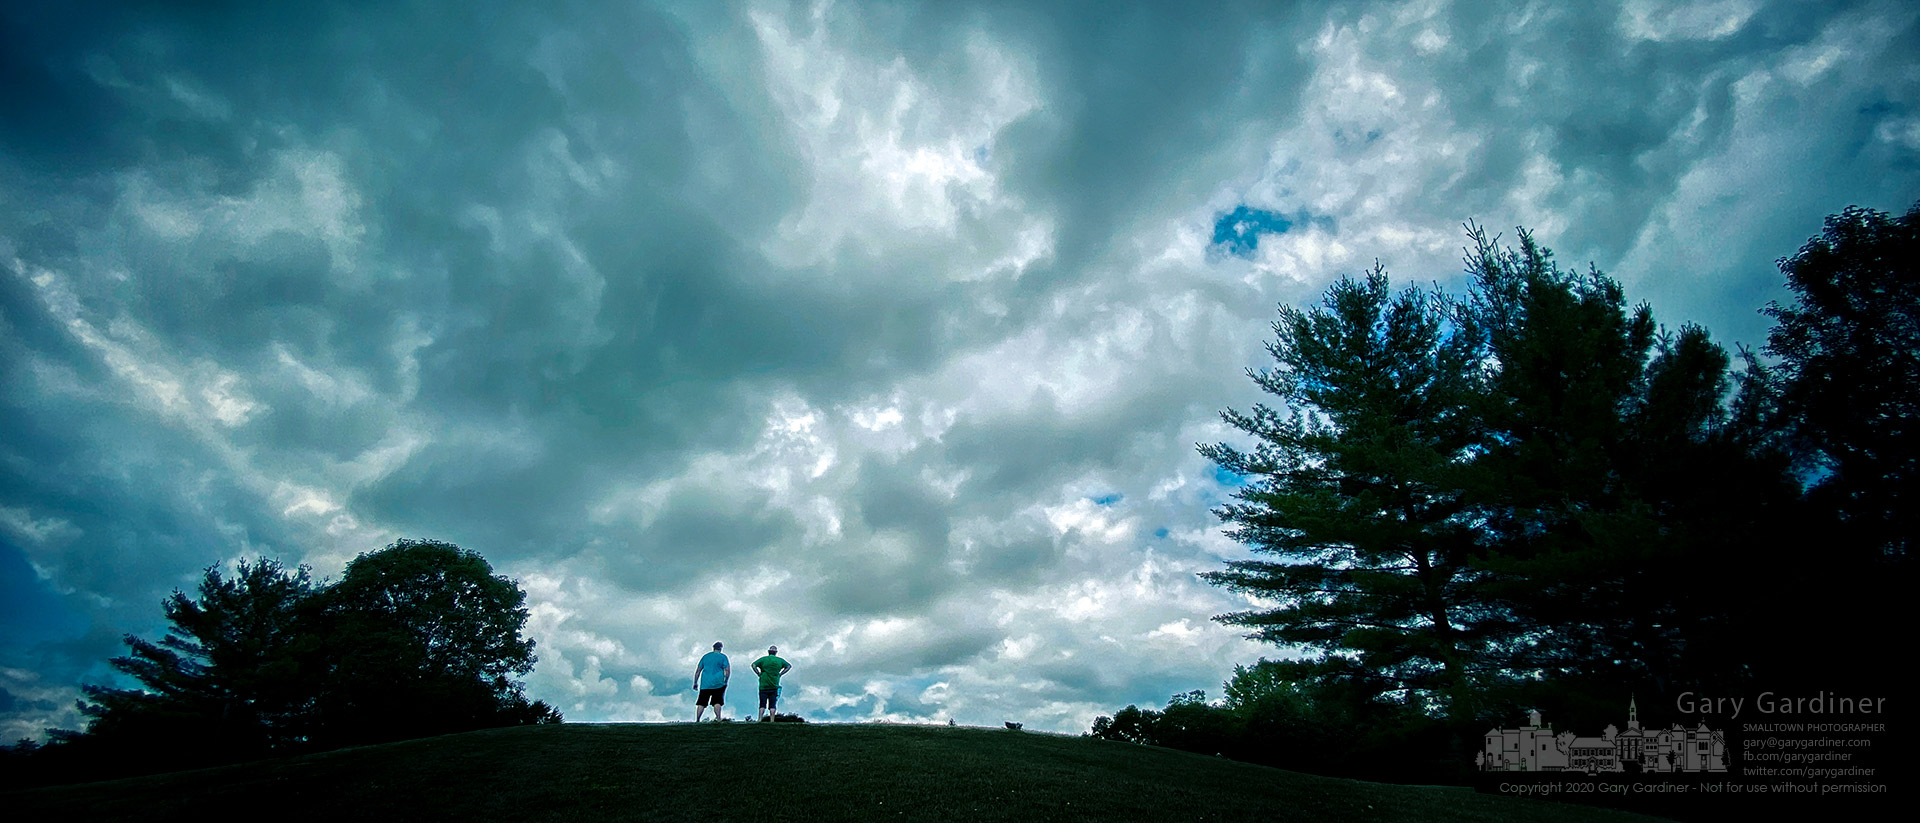 Two fathers stand atop a small hill at the edge of the Highlands wetlands to watch over their children playing in the soccer fields under story skies. My Final Photo for June 22, 2020.